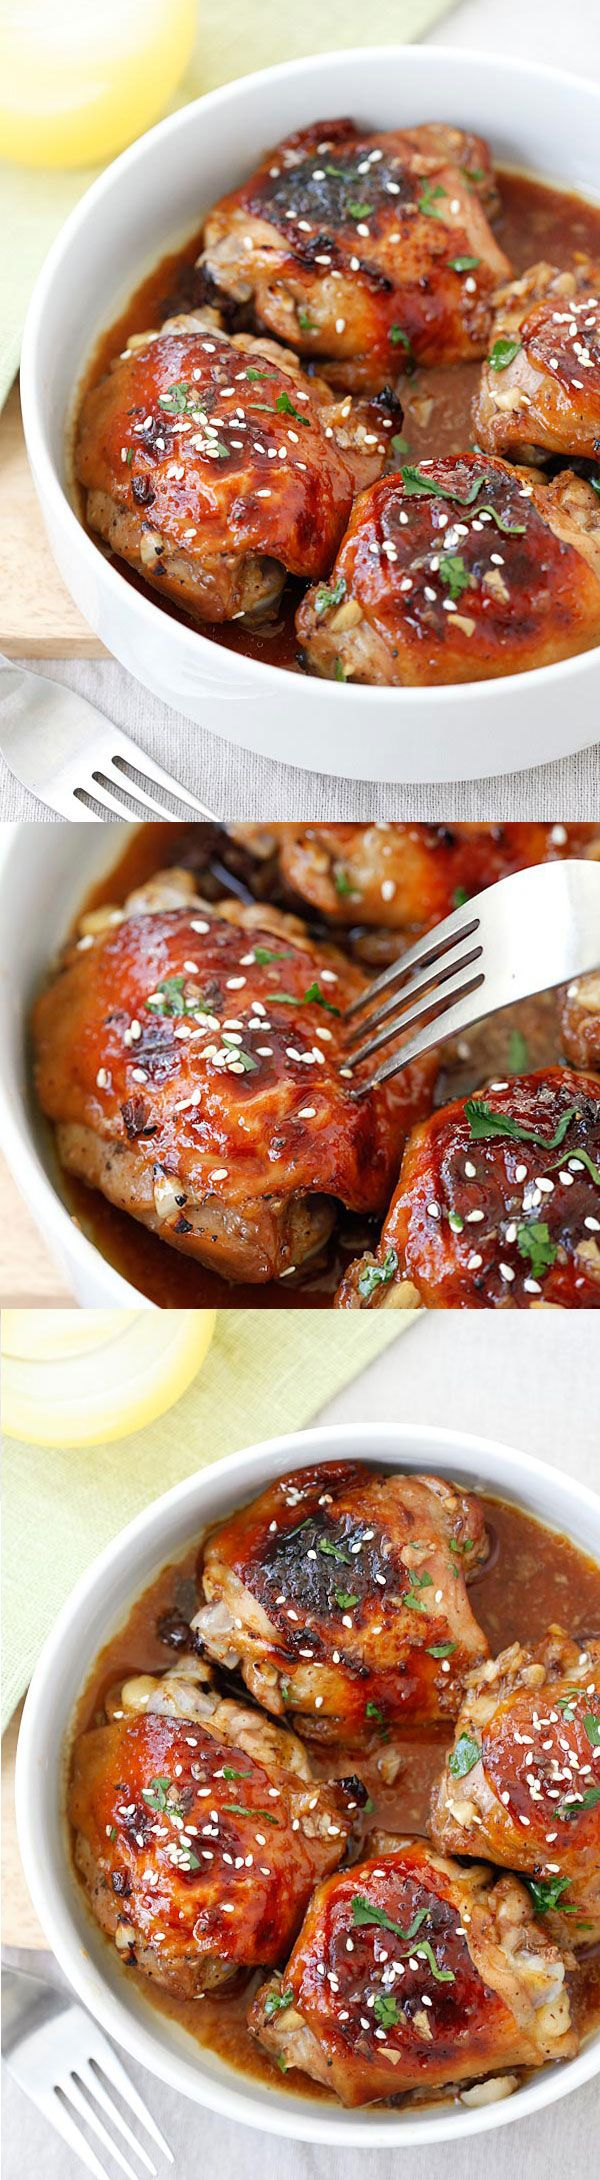 Baked Honey Soy Chicken - moist, tender and juicy chicken thighs marinated with honey, soy sauce, ginger, garlic and baked in oven. Easy dinner for the family!   rasamalaysia.com